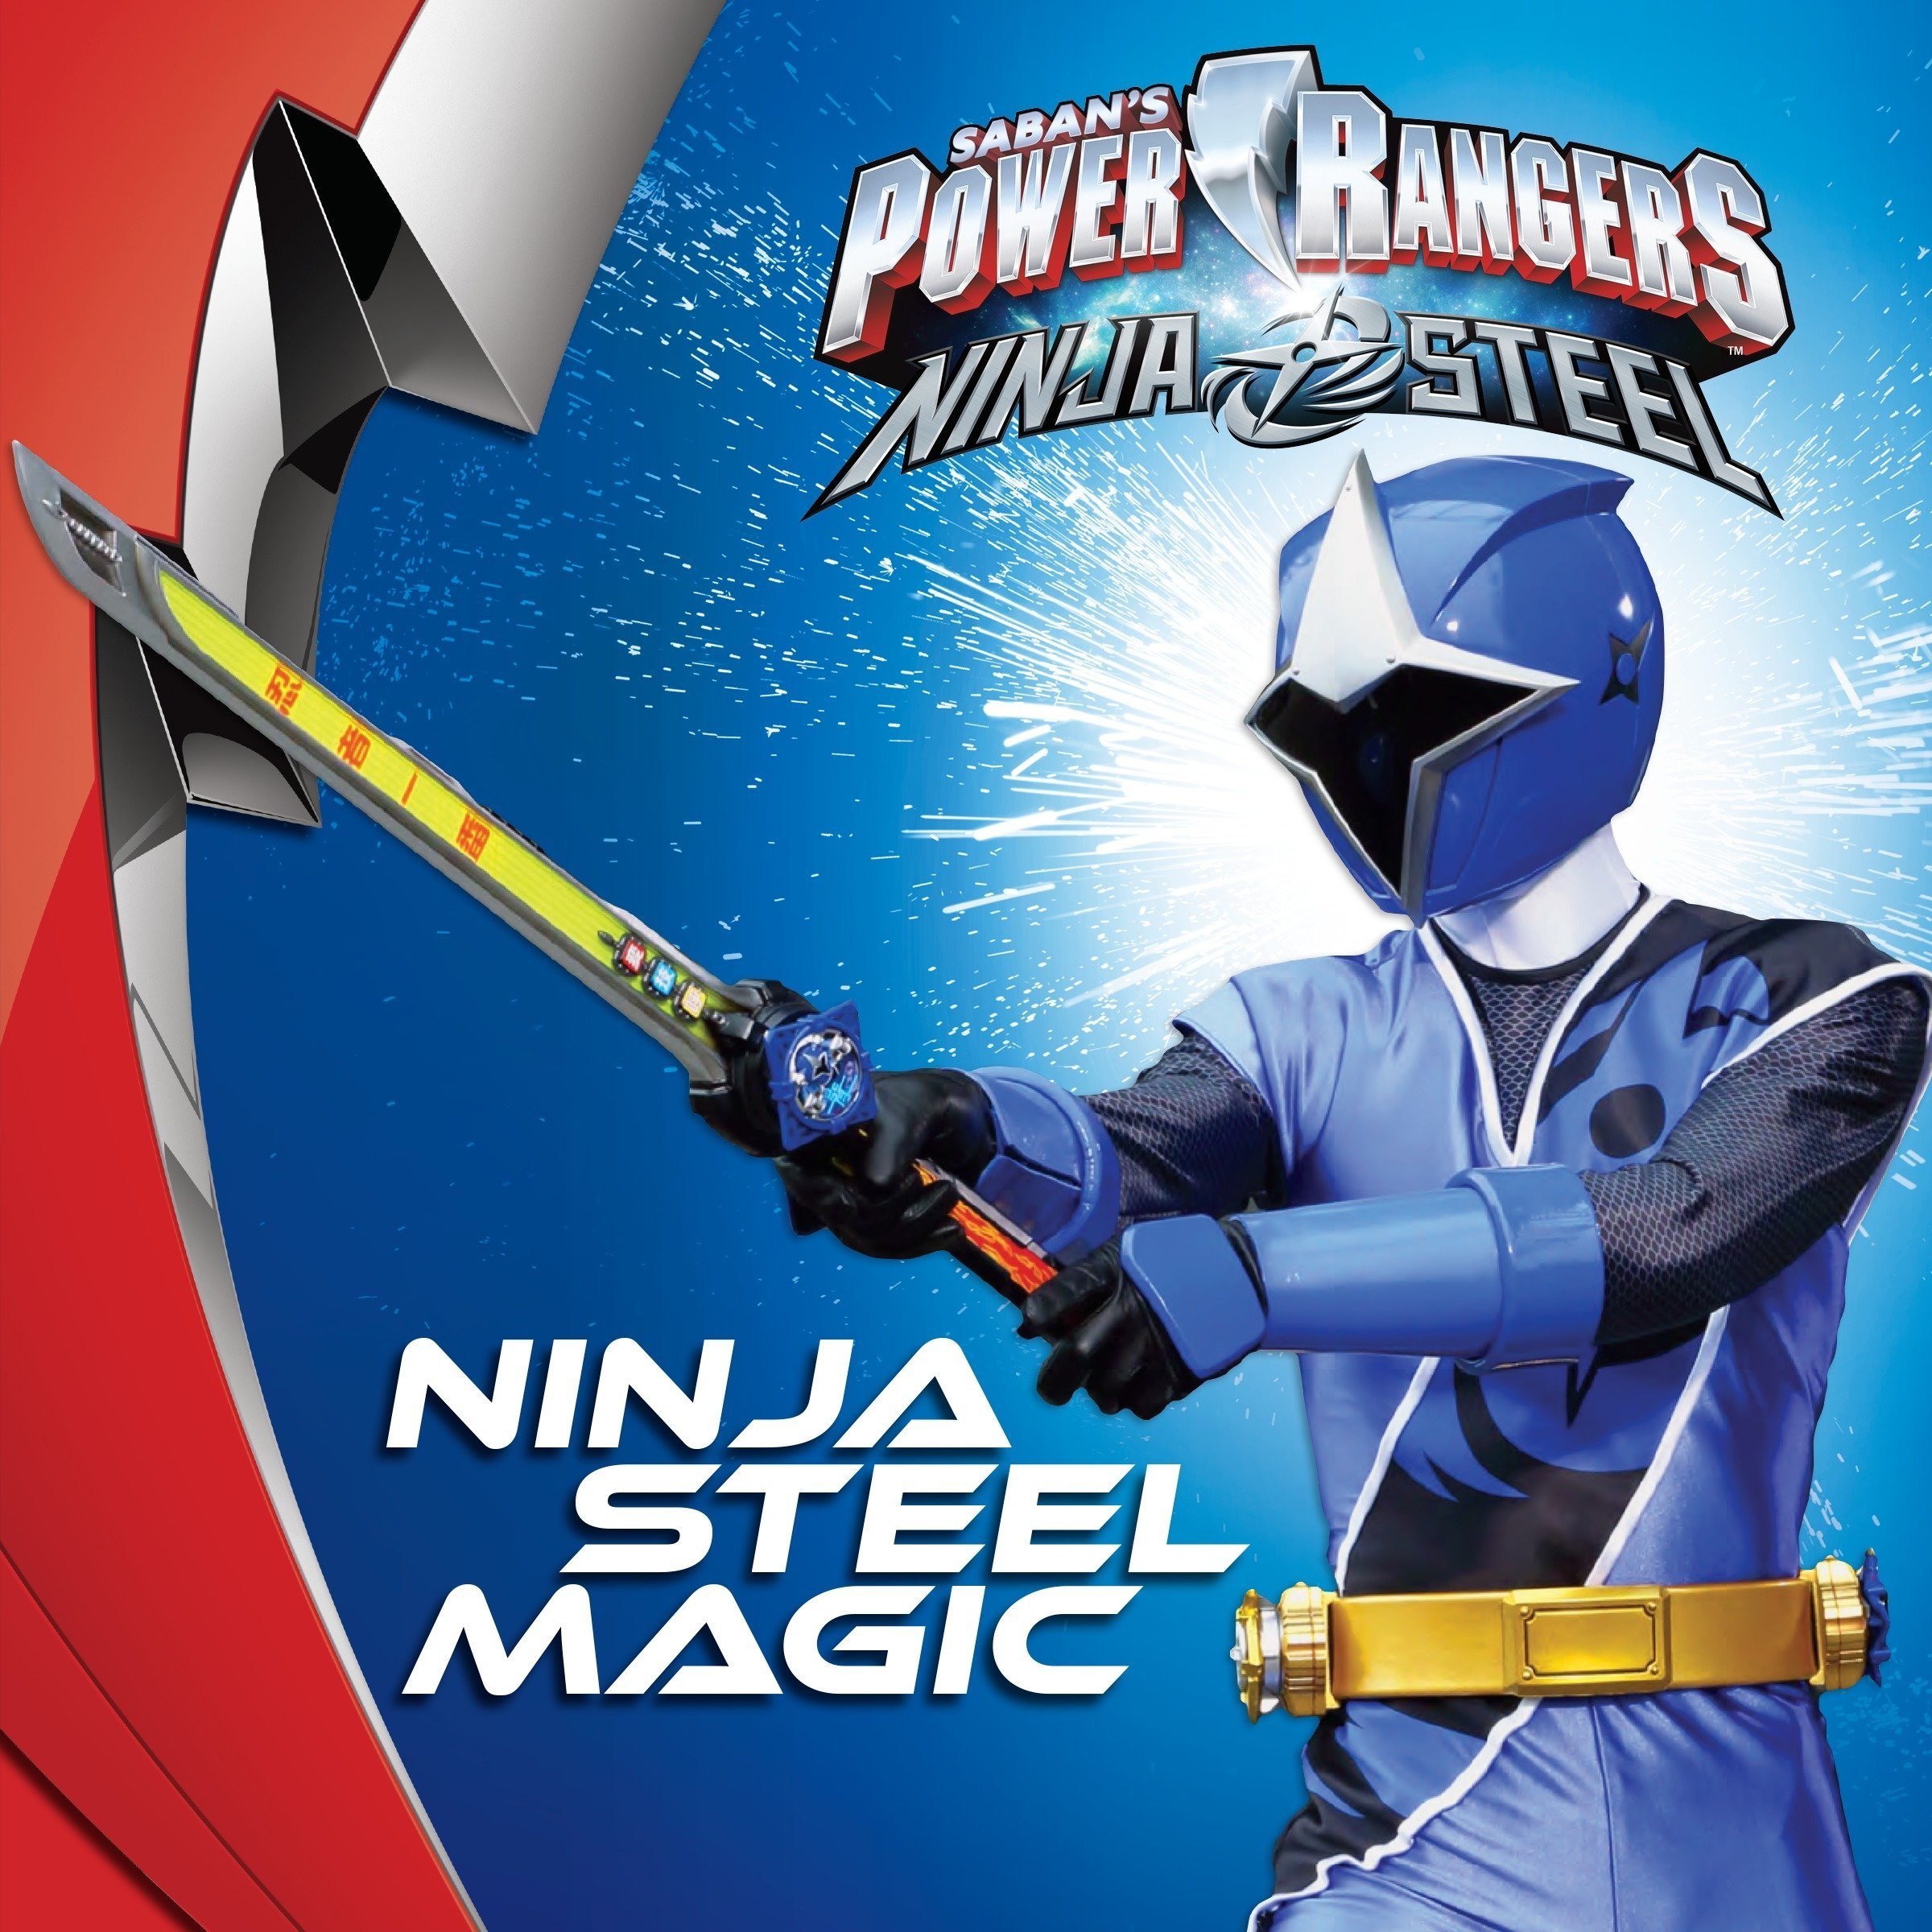 Ninja Steel Magic Sabans Power Rangers: Ninja Steel: Amazon ...